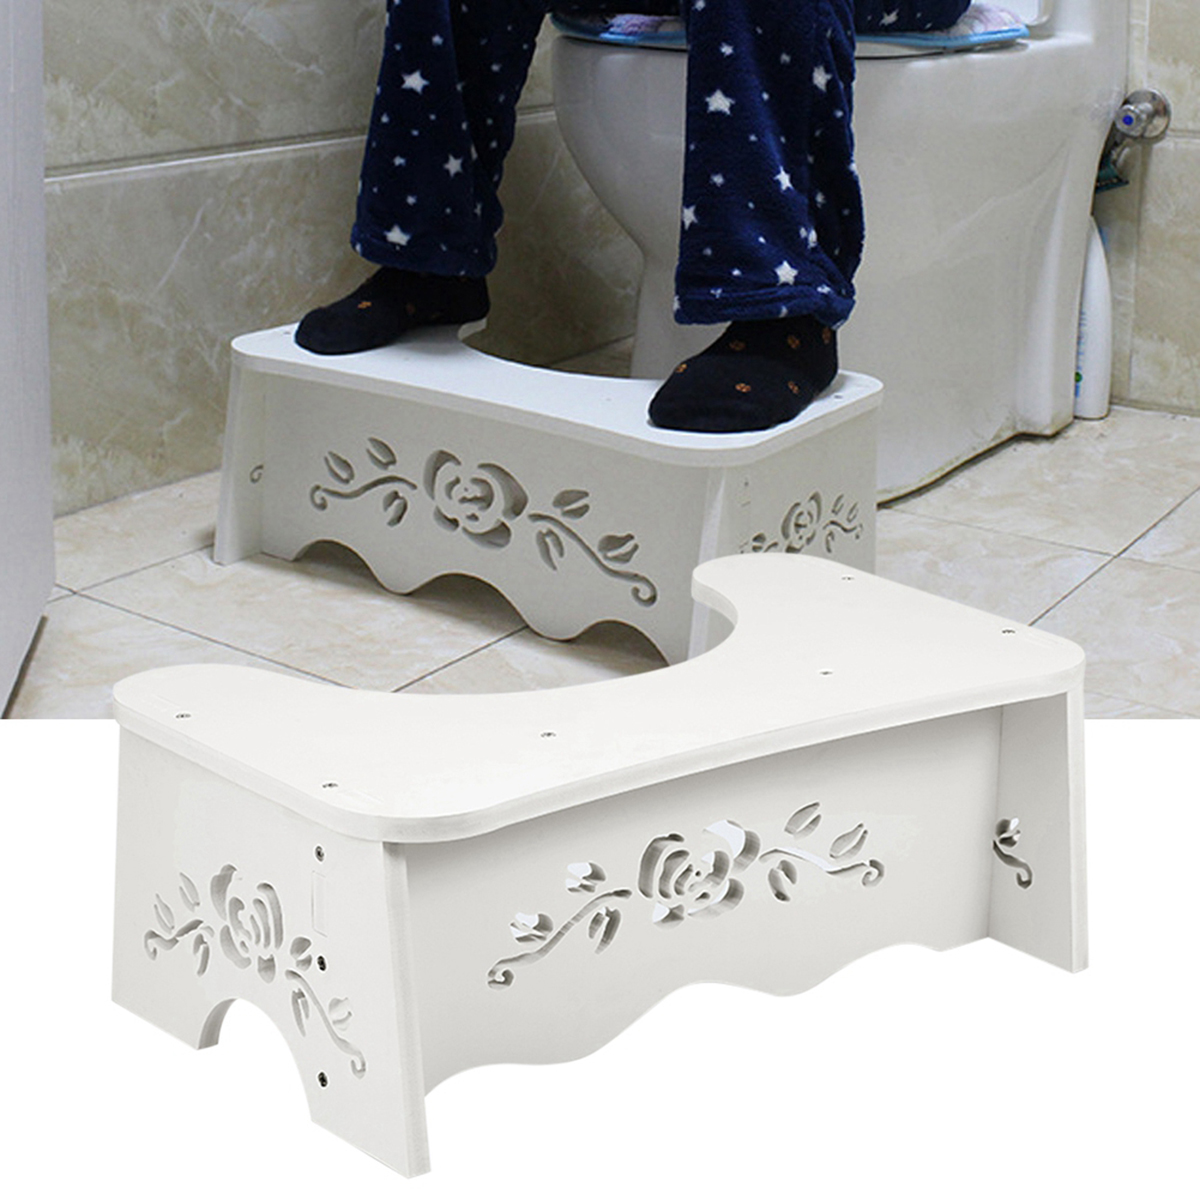 Non-slip Toilet Stool Bench For Commode Aid Squatty Step Foot Stool Potty Help Prevent Constipation Bathroom Supplies Auxiliary